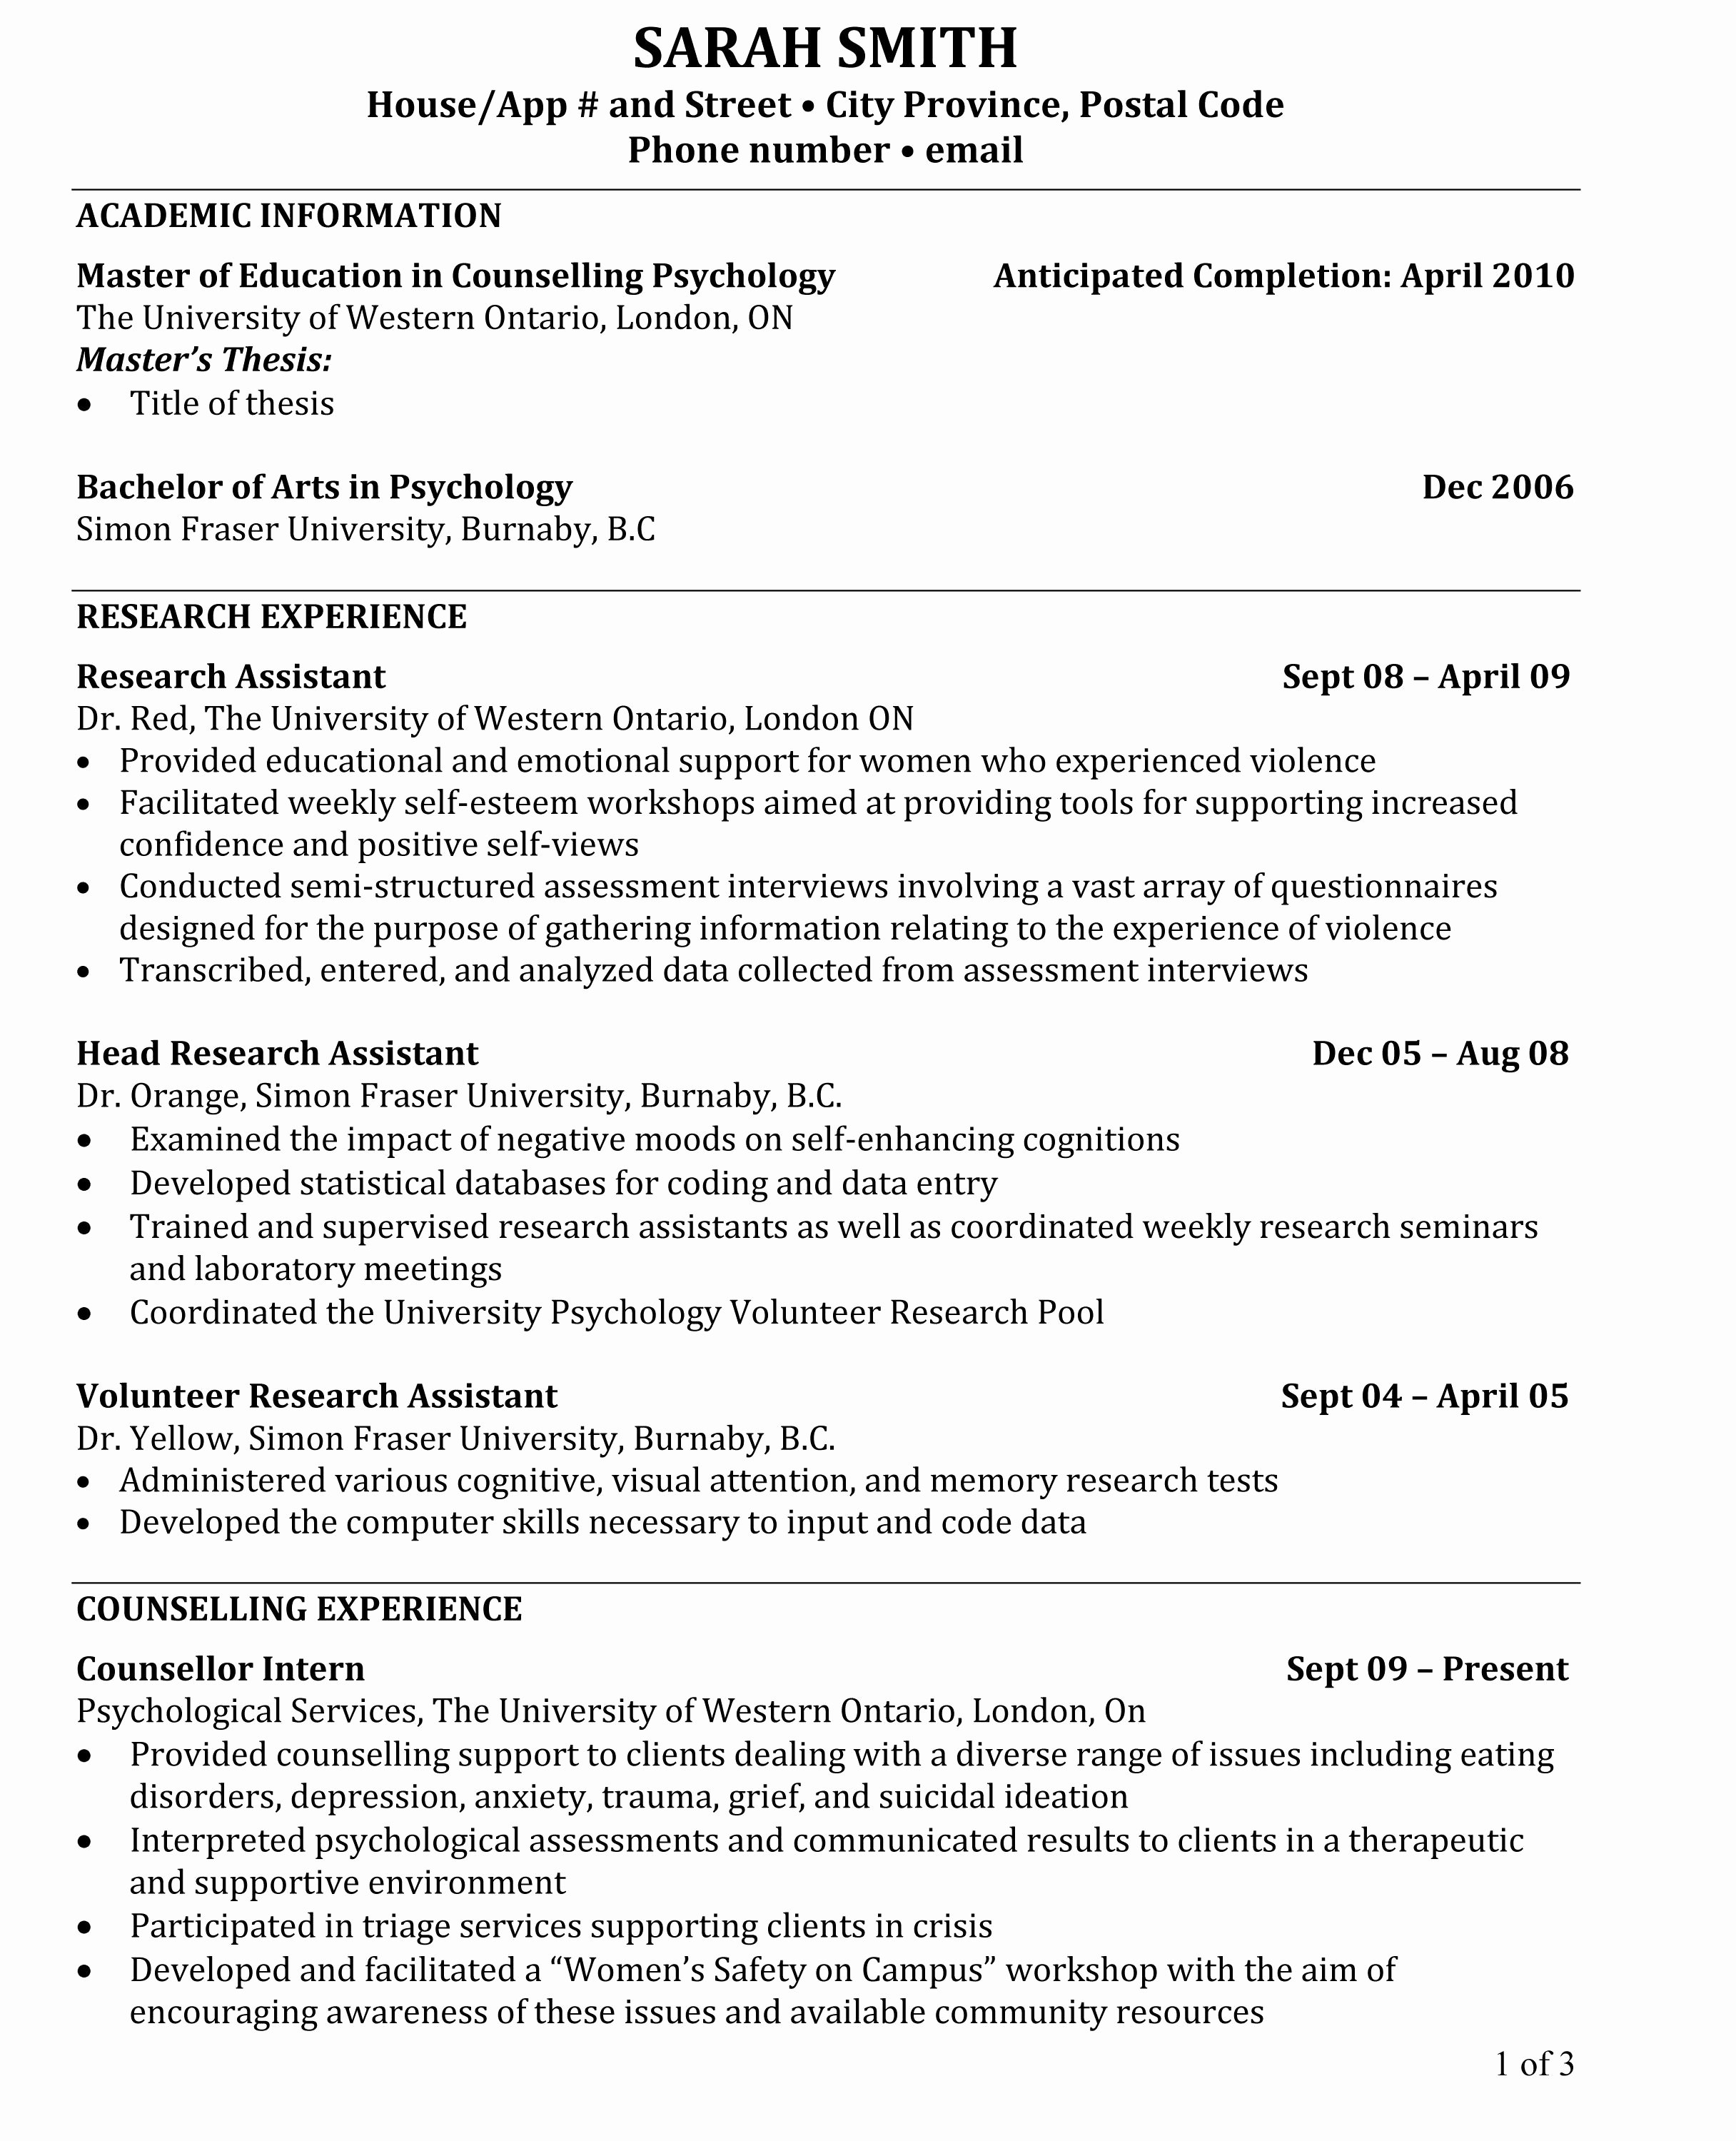 Grad School Resume Template Elegant Pin by Kathy Thompson On Teaching Pinterest